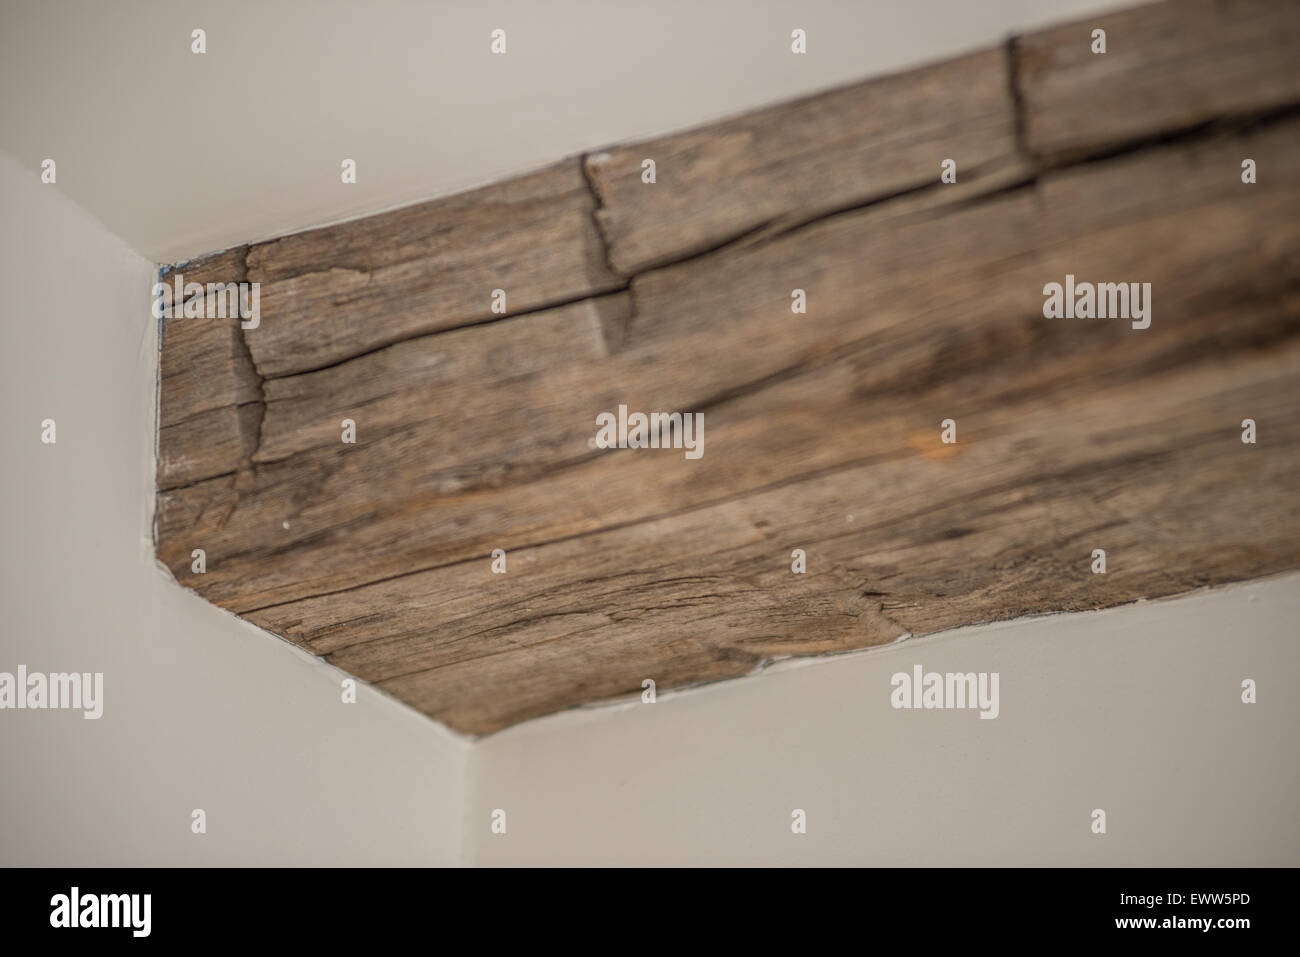 Distressed Rustic Country Style Wood Ceiling Beam Stock